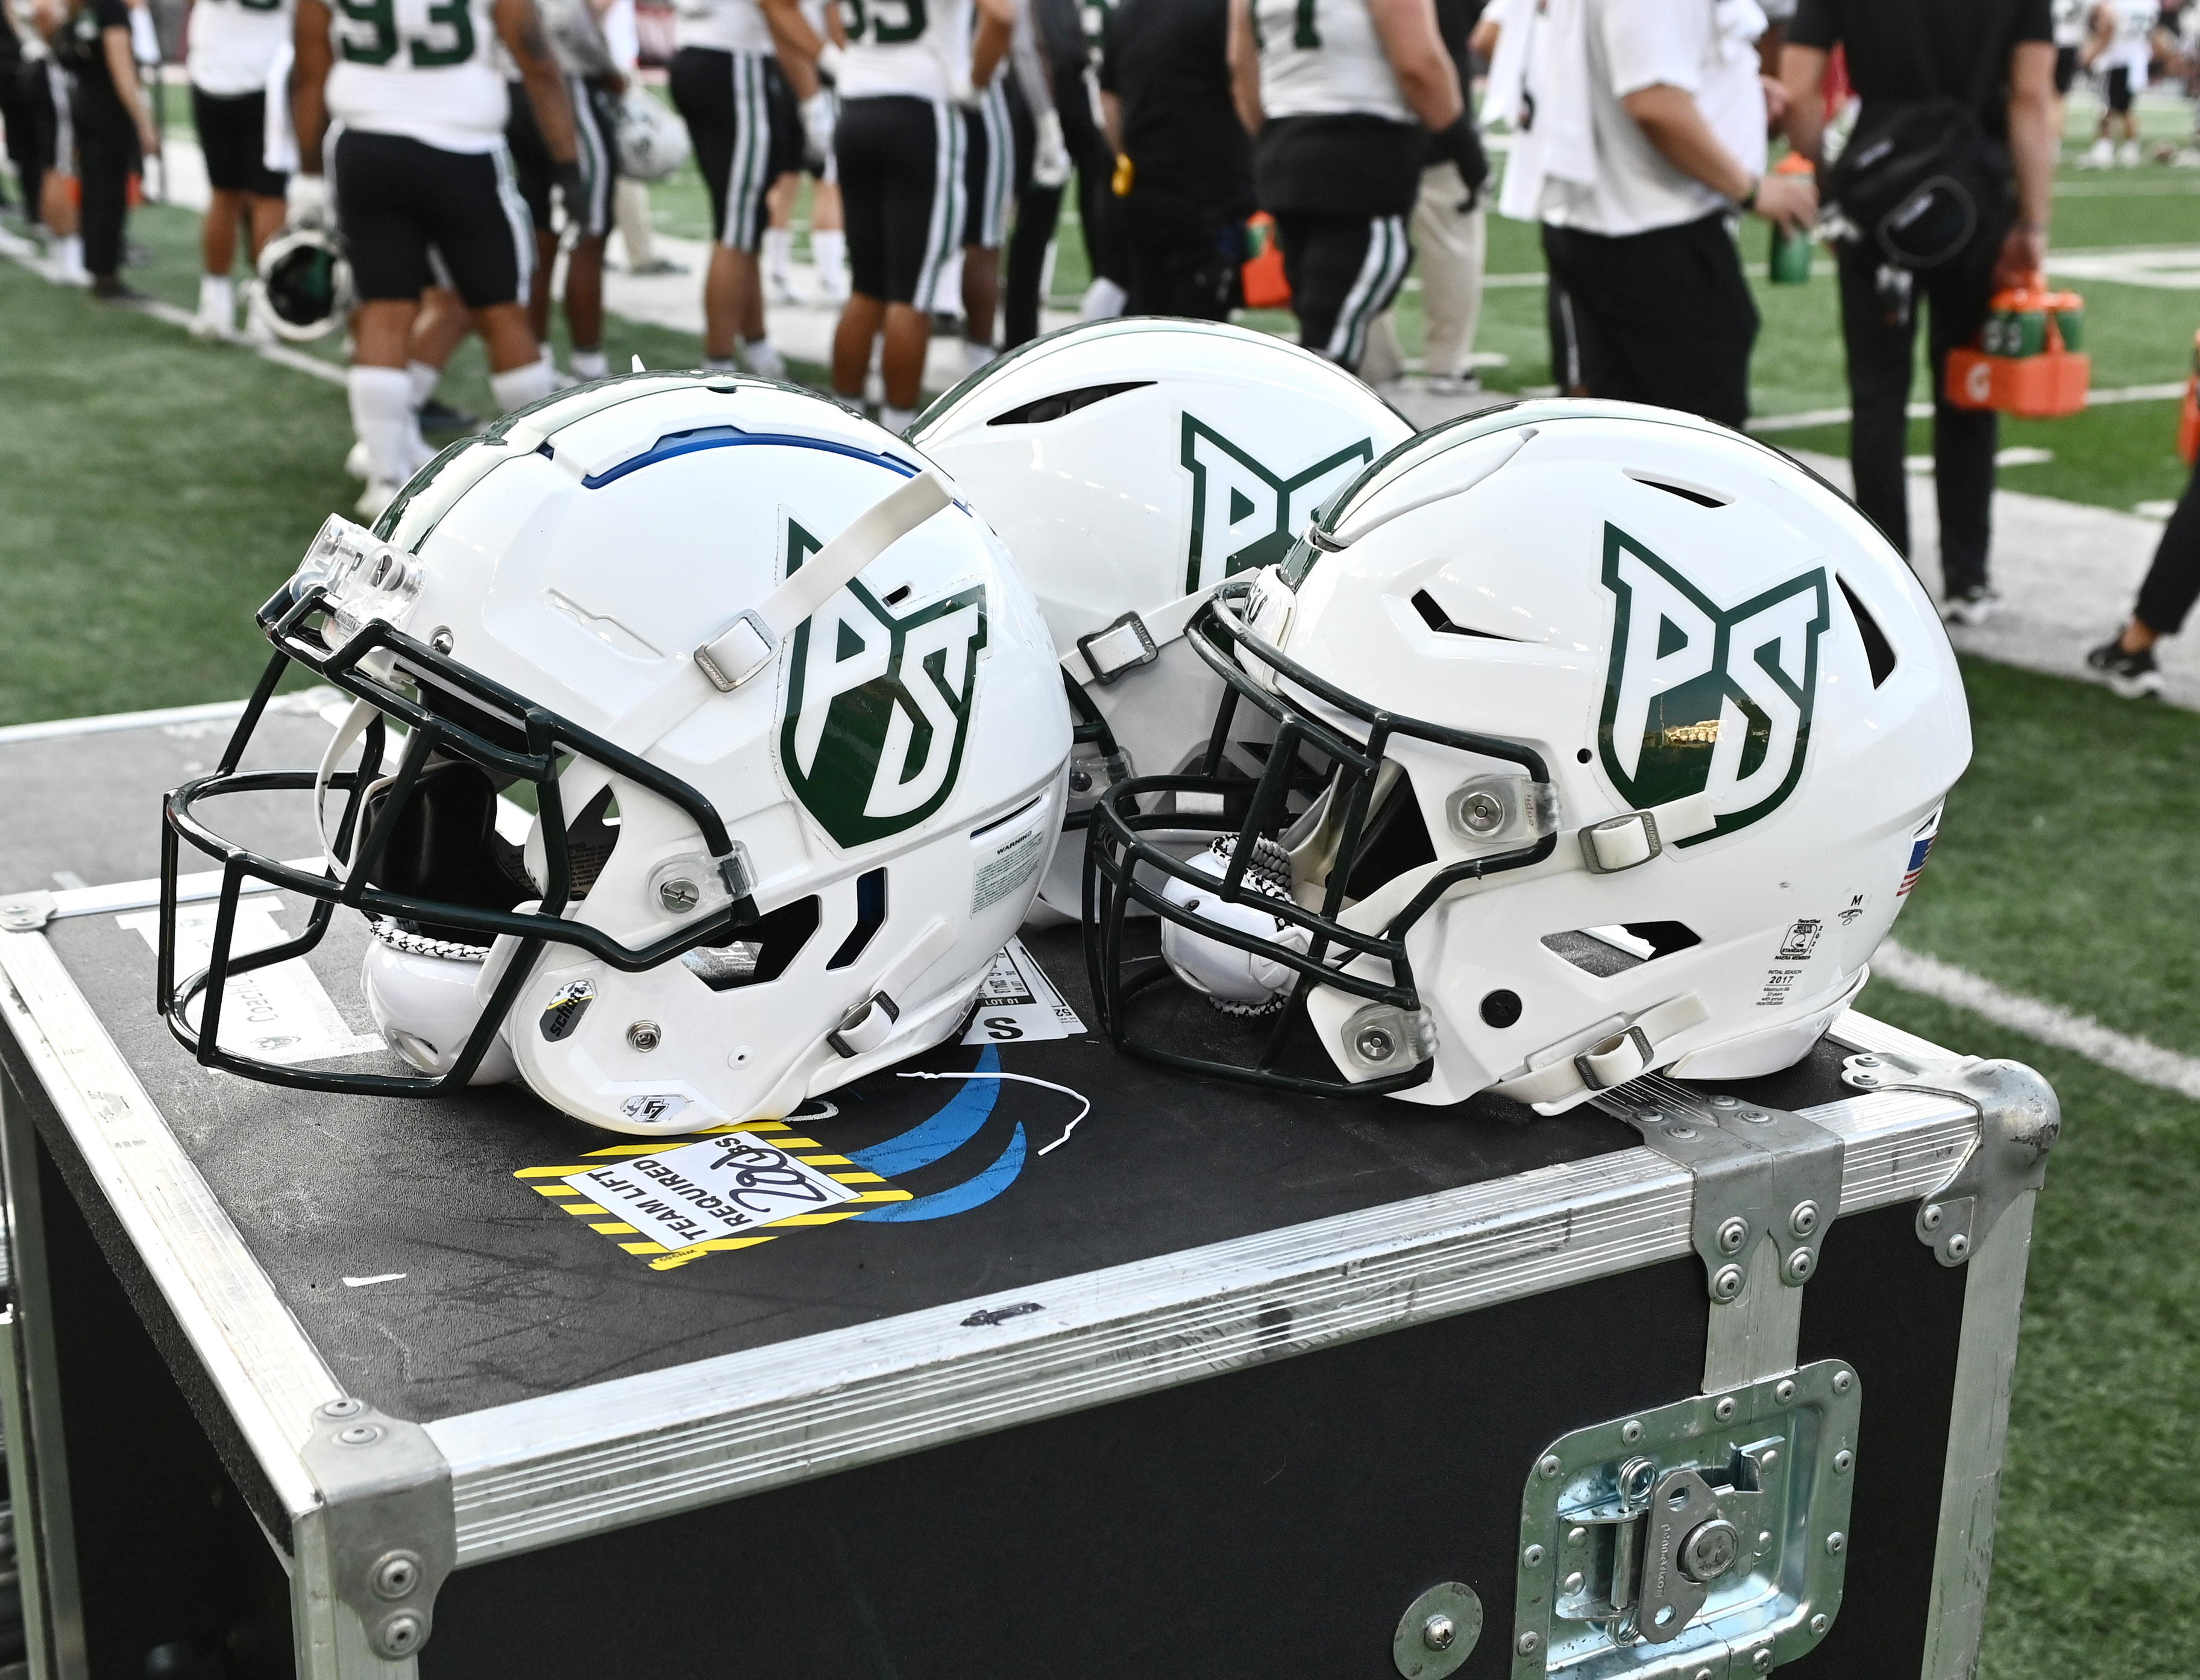 Portland State Vikings helmets sit during a game against the Washington State Cougars in the second half at Gesa Field at Martin Stadium.